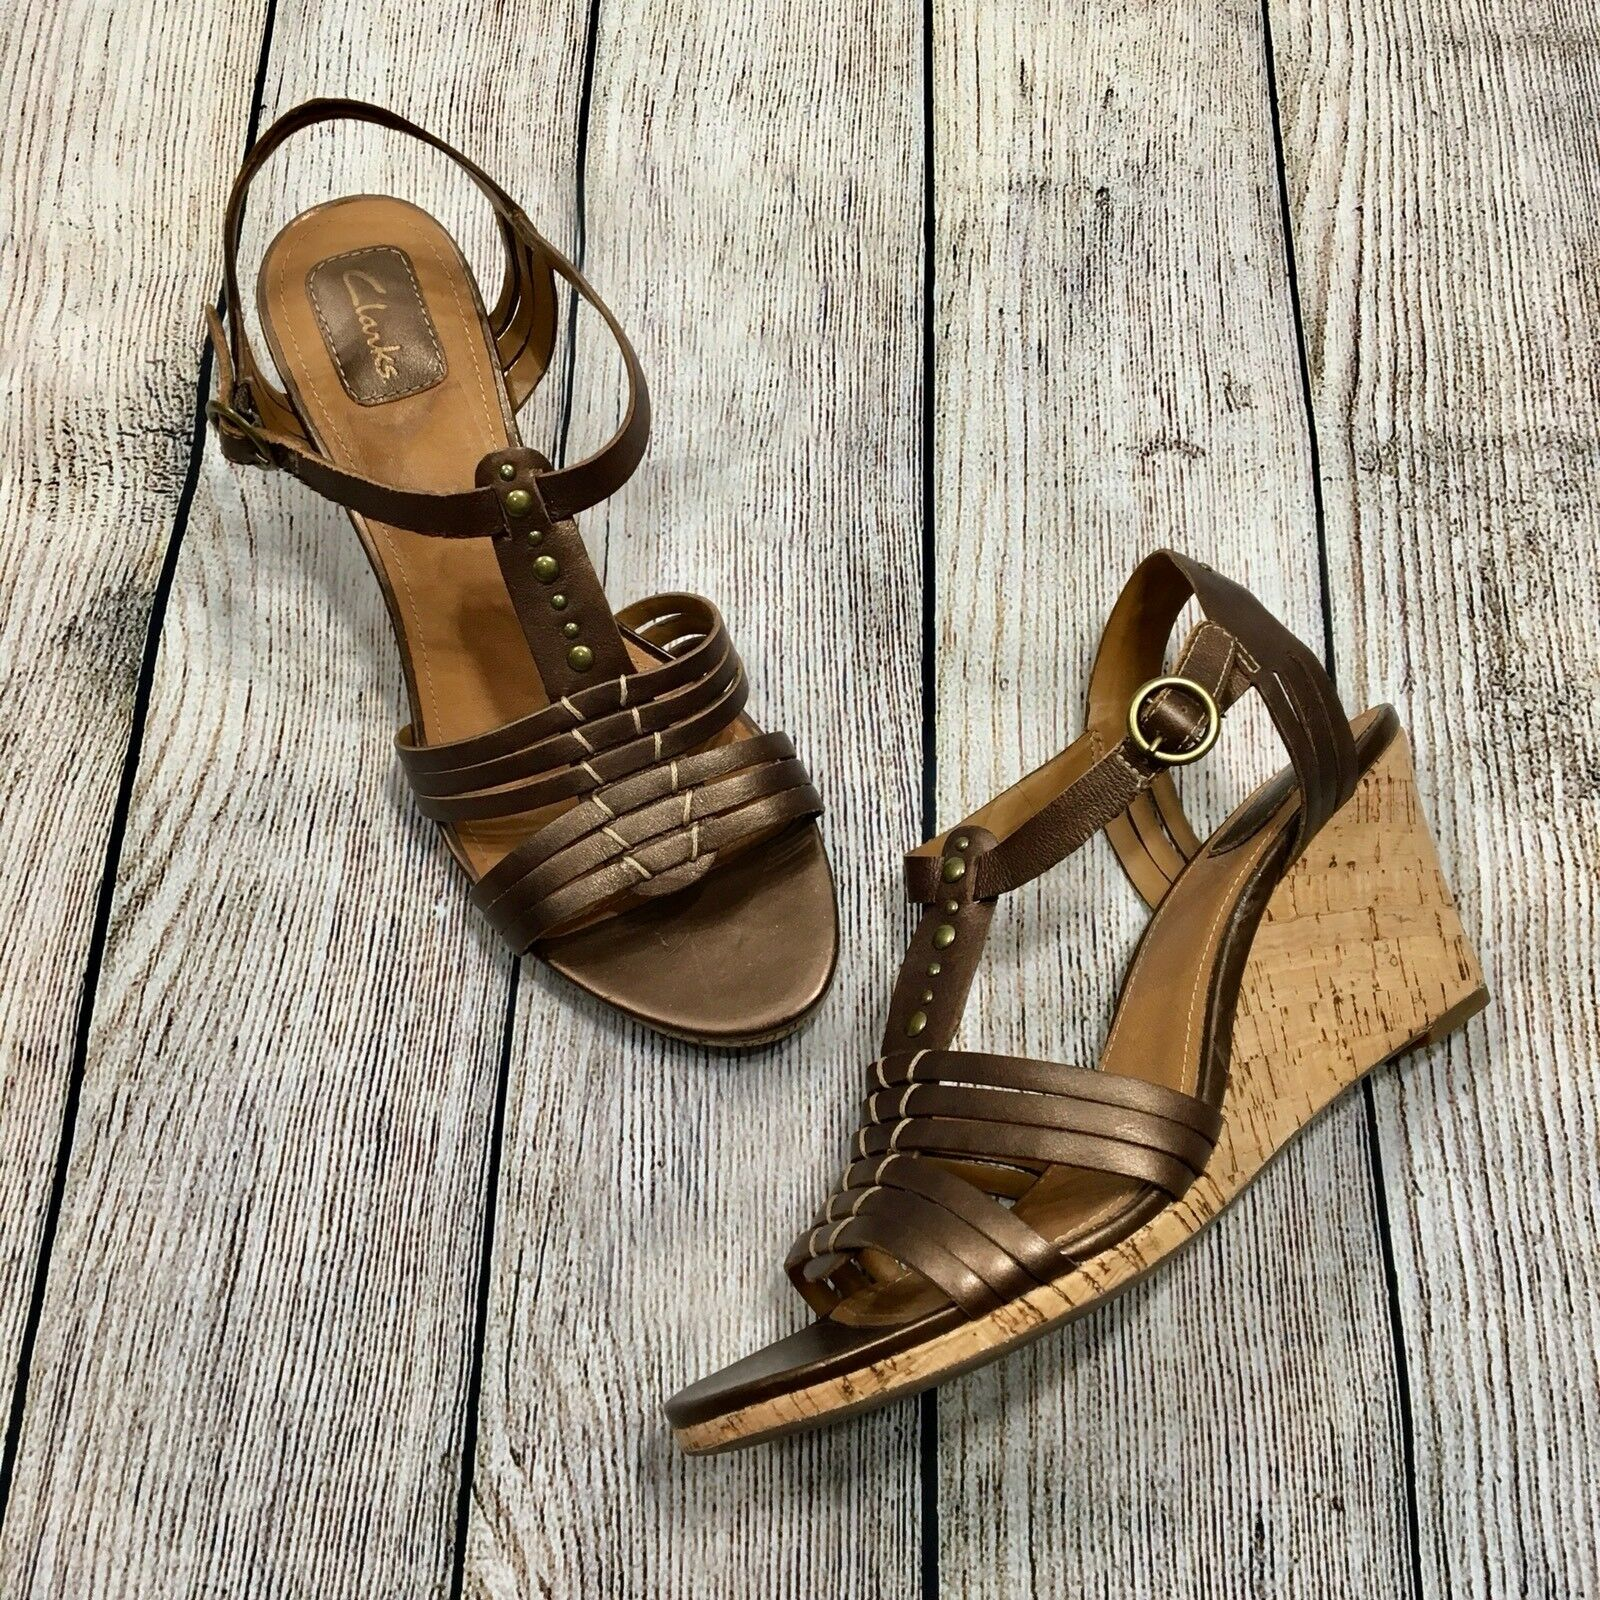 Clarks Strappy Bronze Sandal Wedges Bronze Studs Size 9.5M